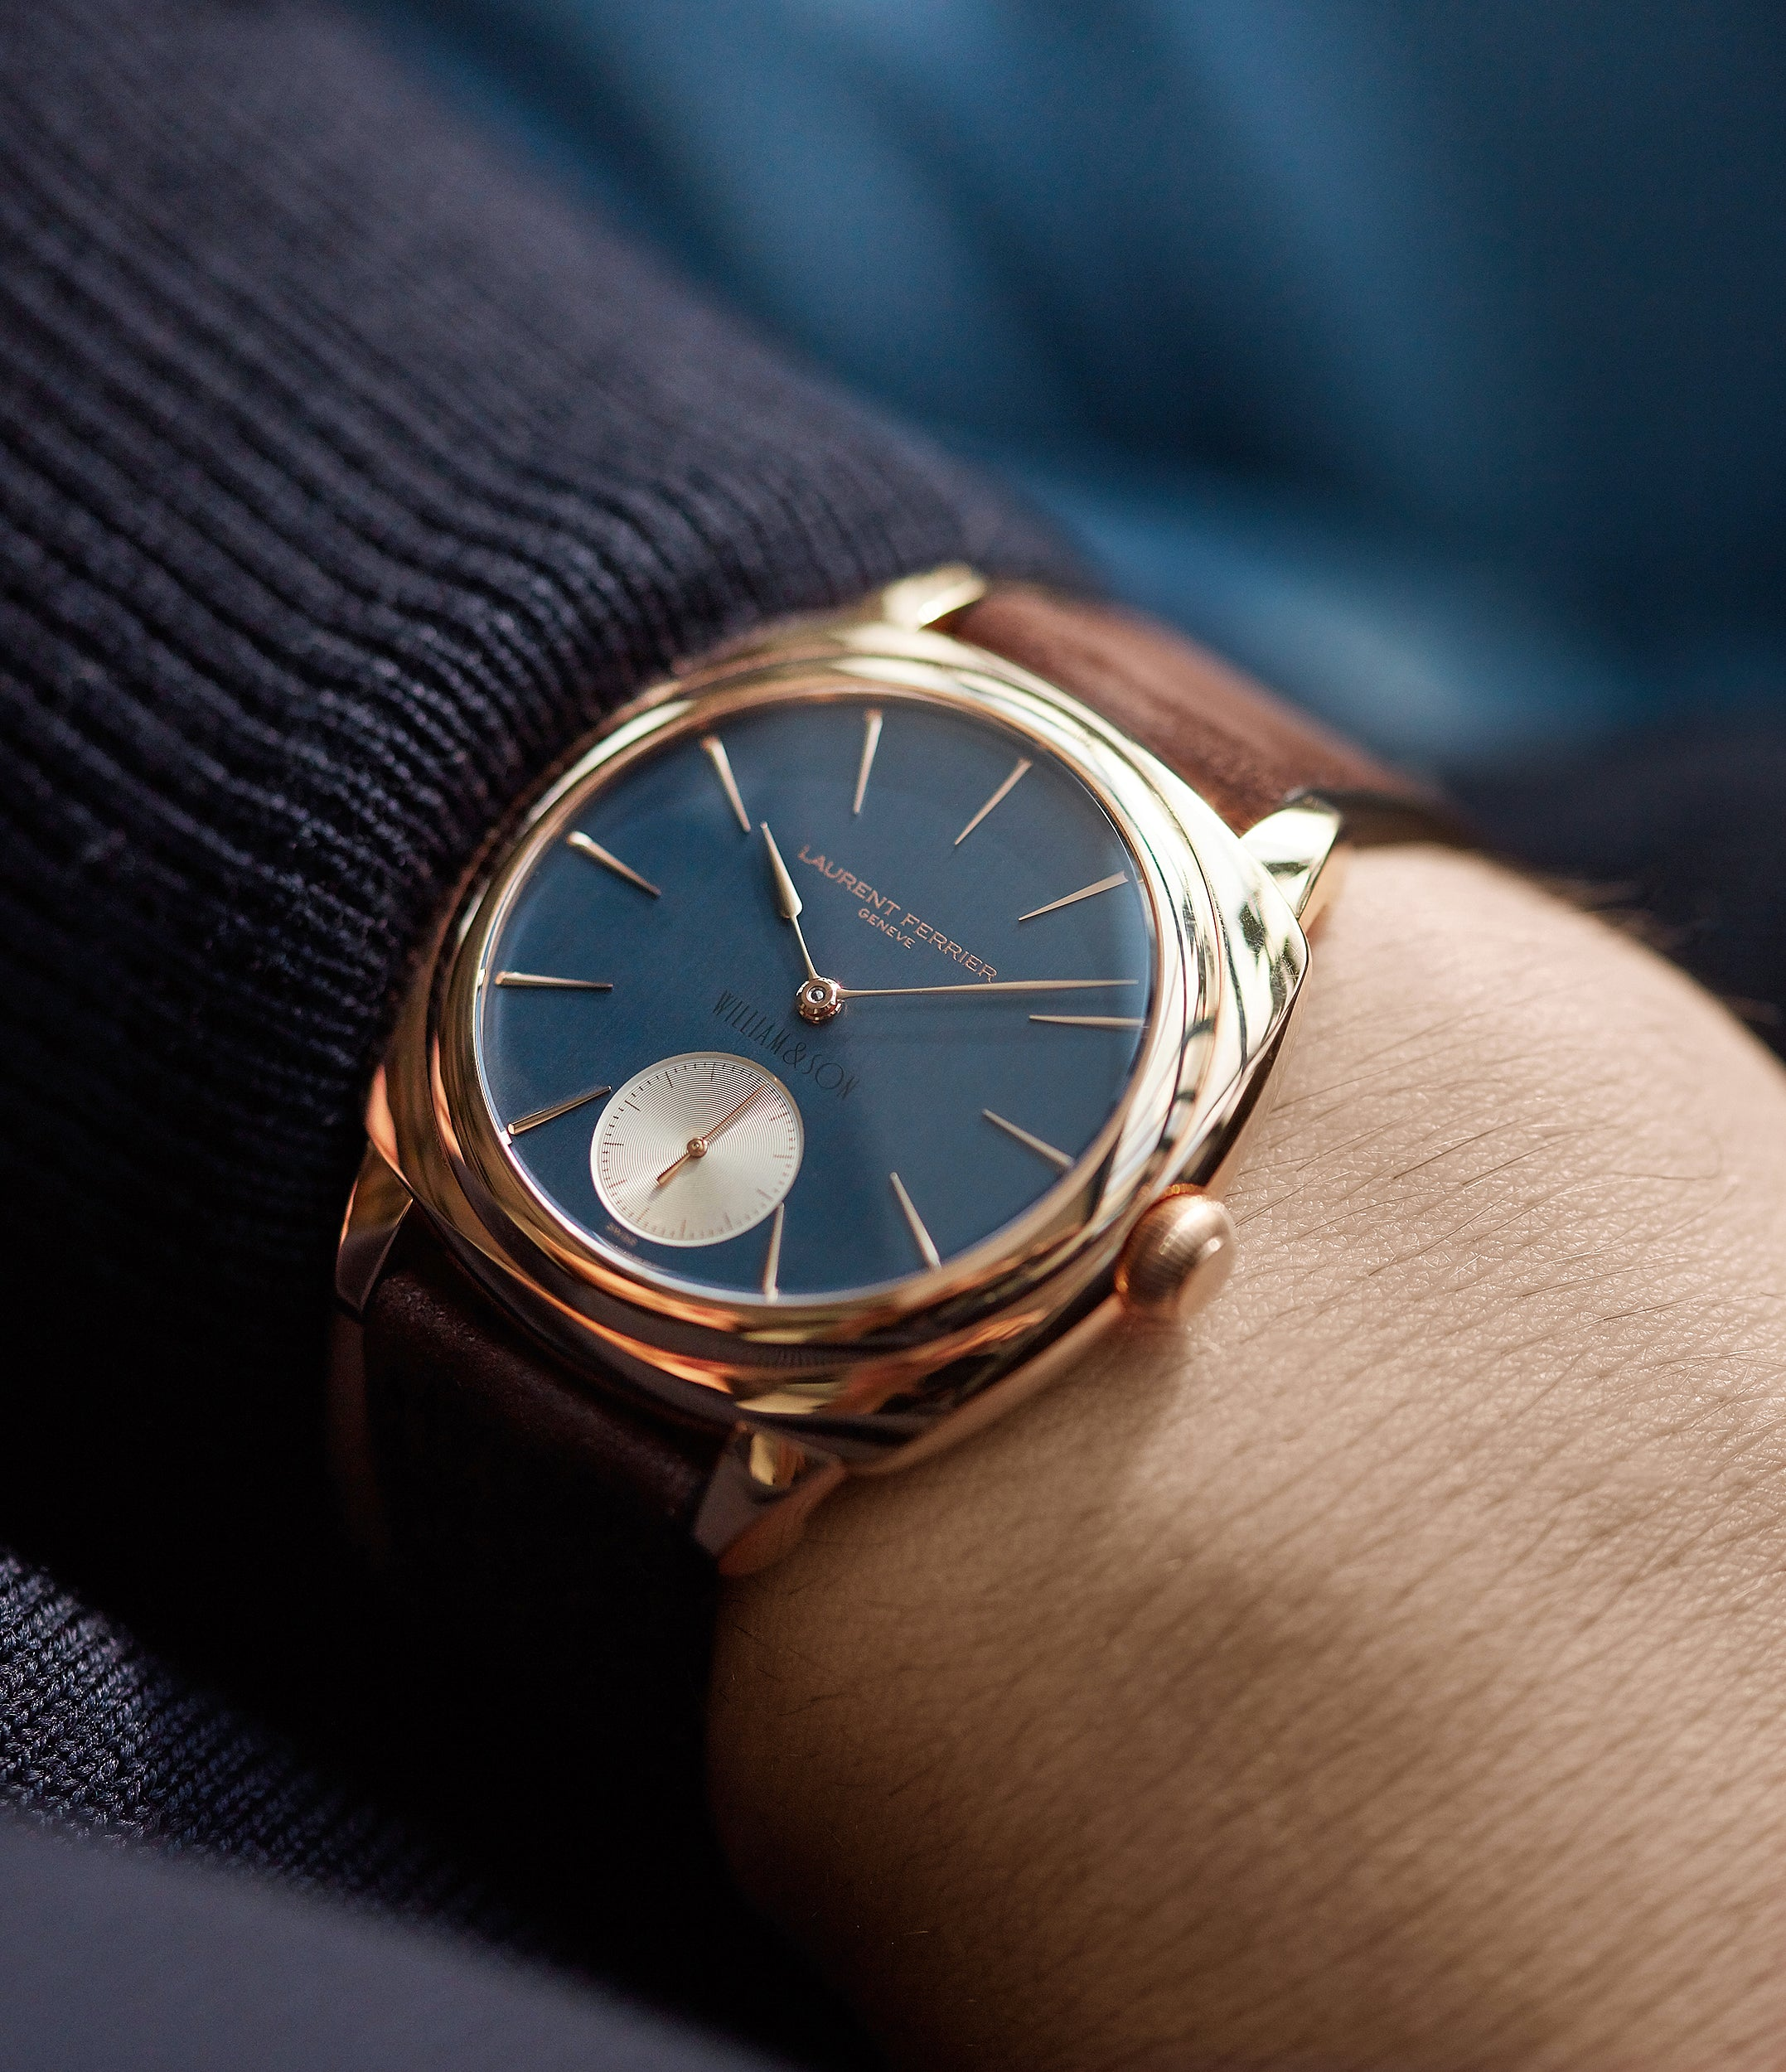 for sale Laurent Ferrier Galet Square Micro-rotor blue dial by  William & Son rose gold rare luxury dress watch for sale online at A Collected Man London UK specialist and approved reseller of rare independent watchmakers